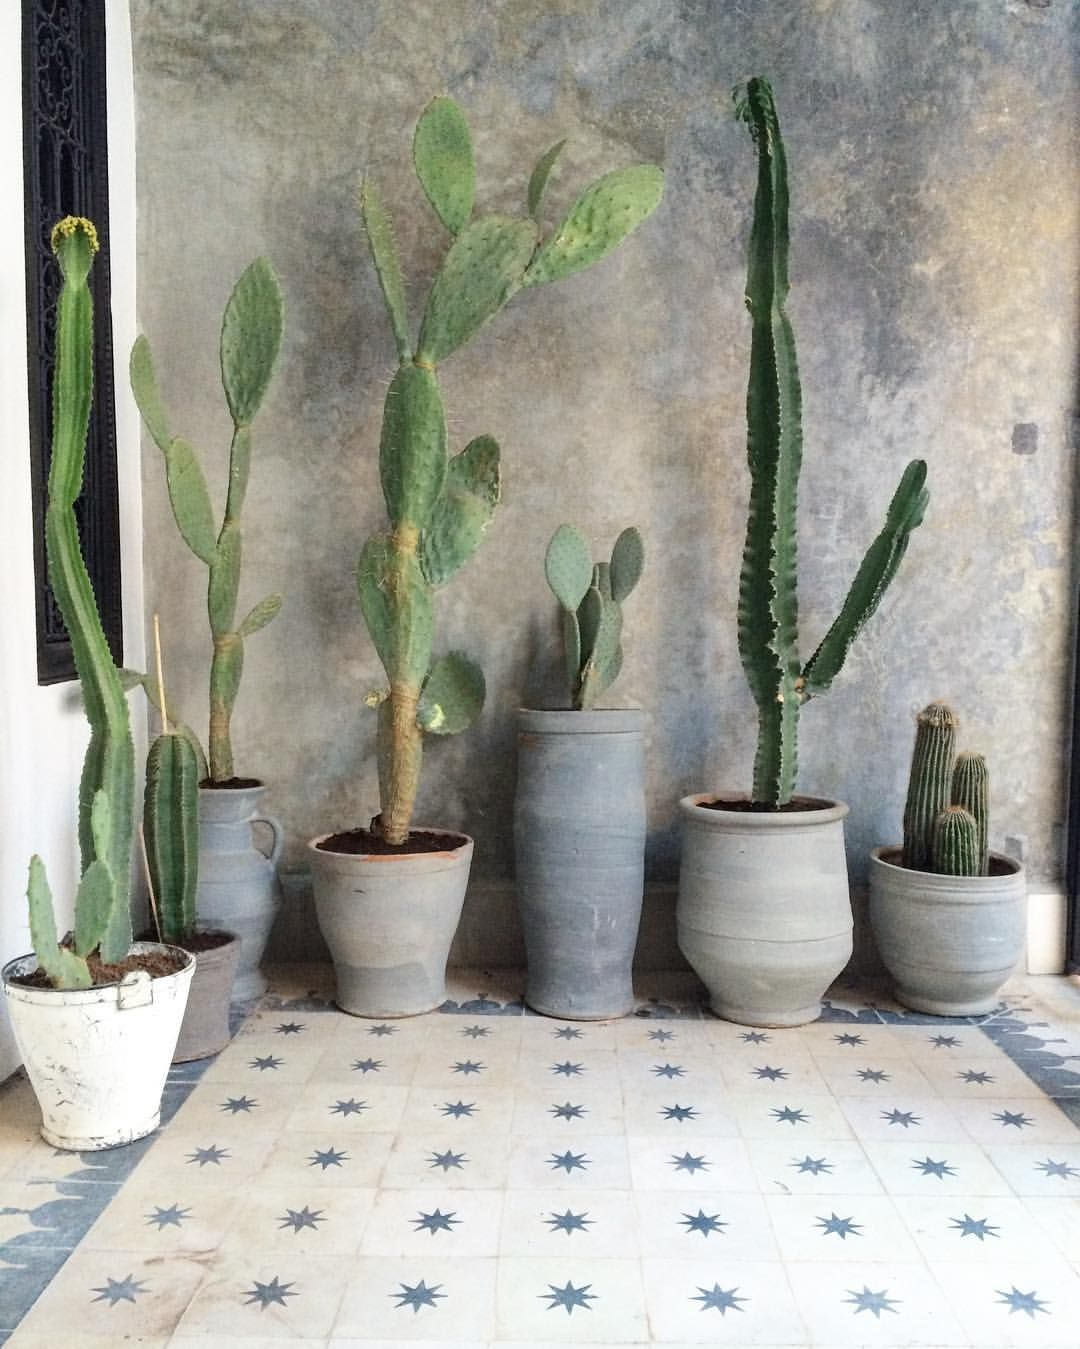 Explore Indoor Cactus Plants And More